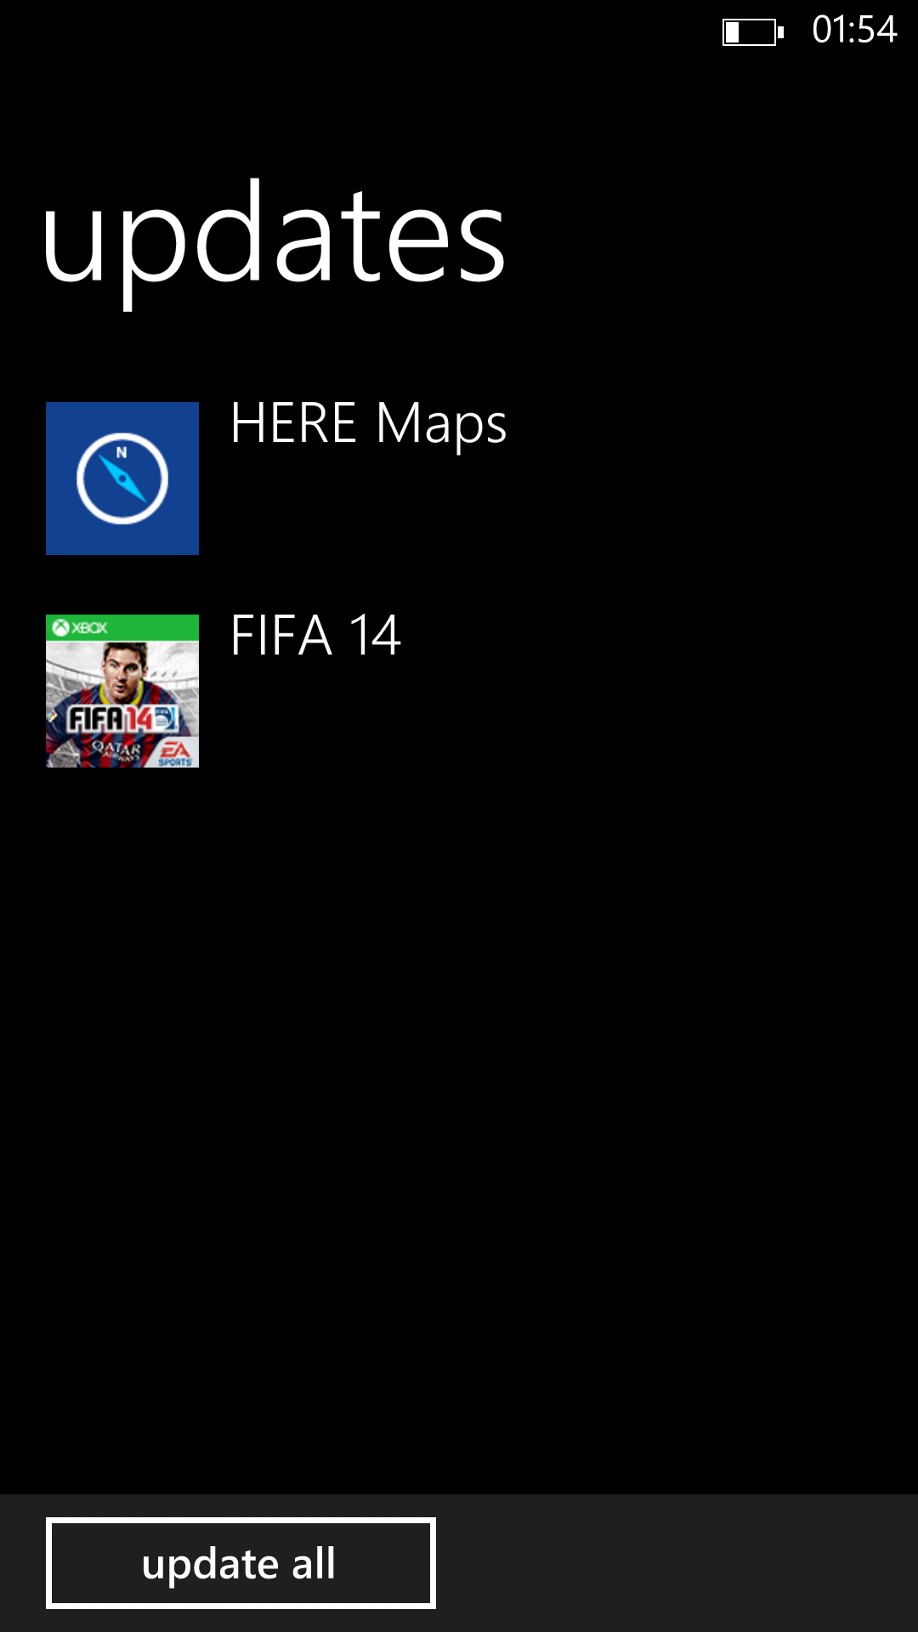 Lumiappdates: HERE Maps and FIFA 14